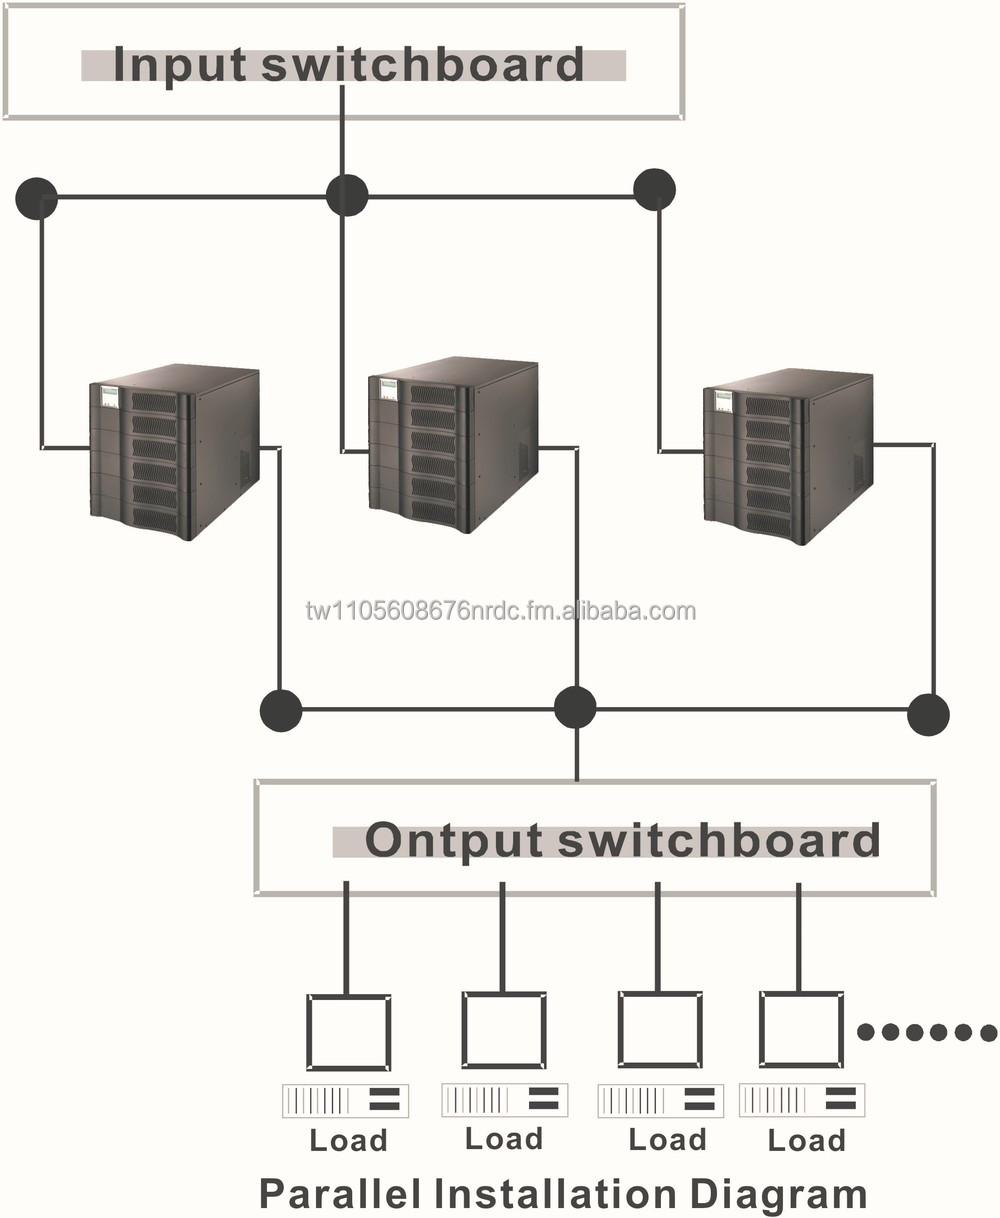 Taiwan 10kva Ups Manufacturers And Suppliers On Rack Mounted Wiring Diagram